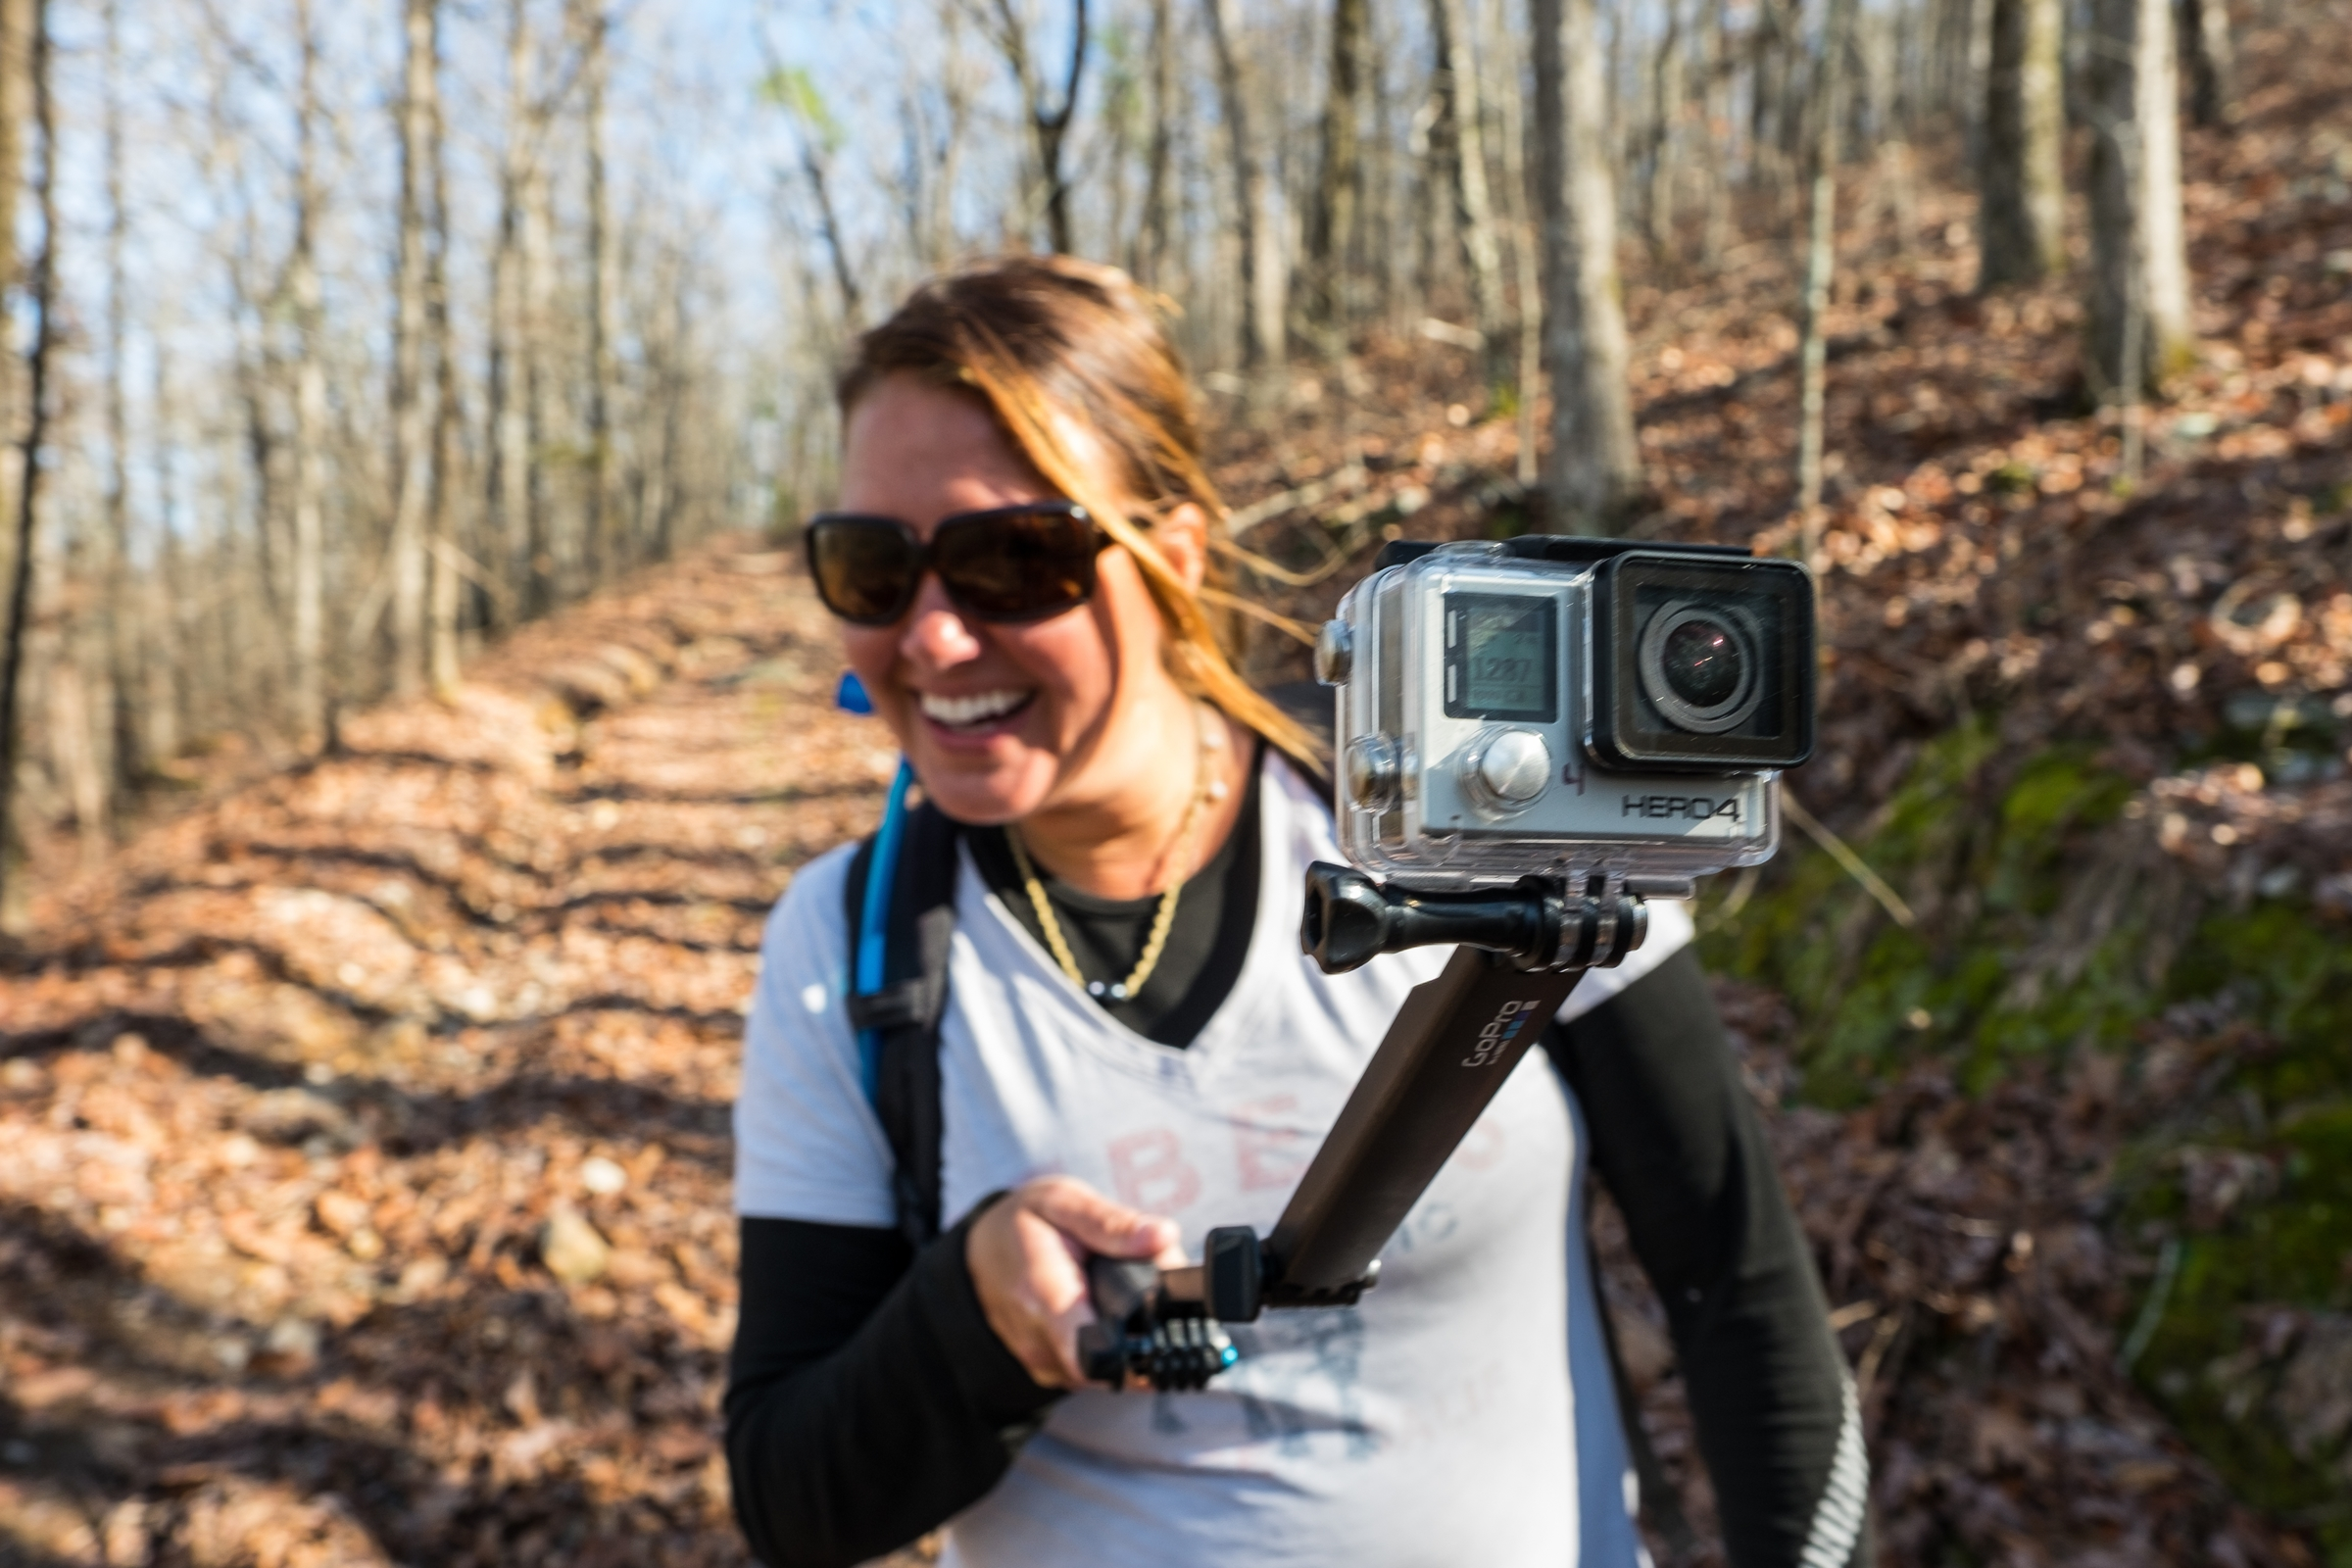 Stef and her GoPro happy on the trails together...